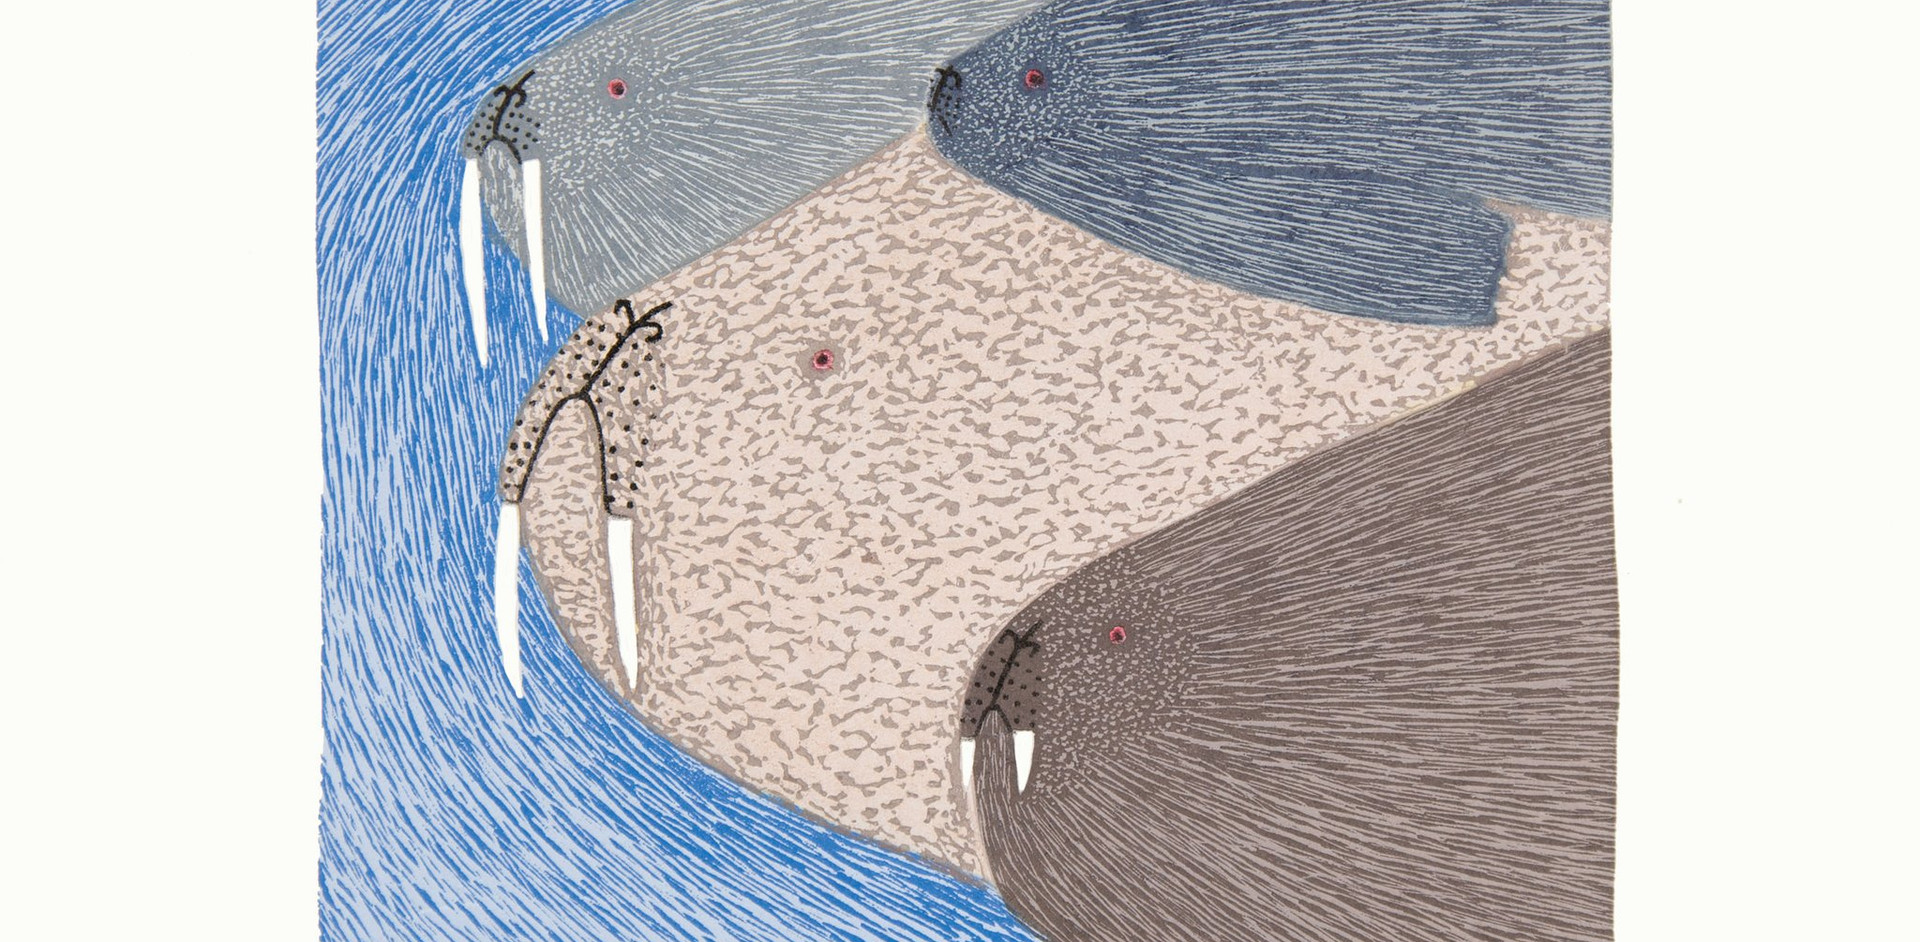 Swimming Walrus by Ningiukulu Teevee from the collection of Kathryn Hanna